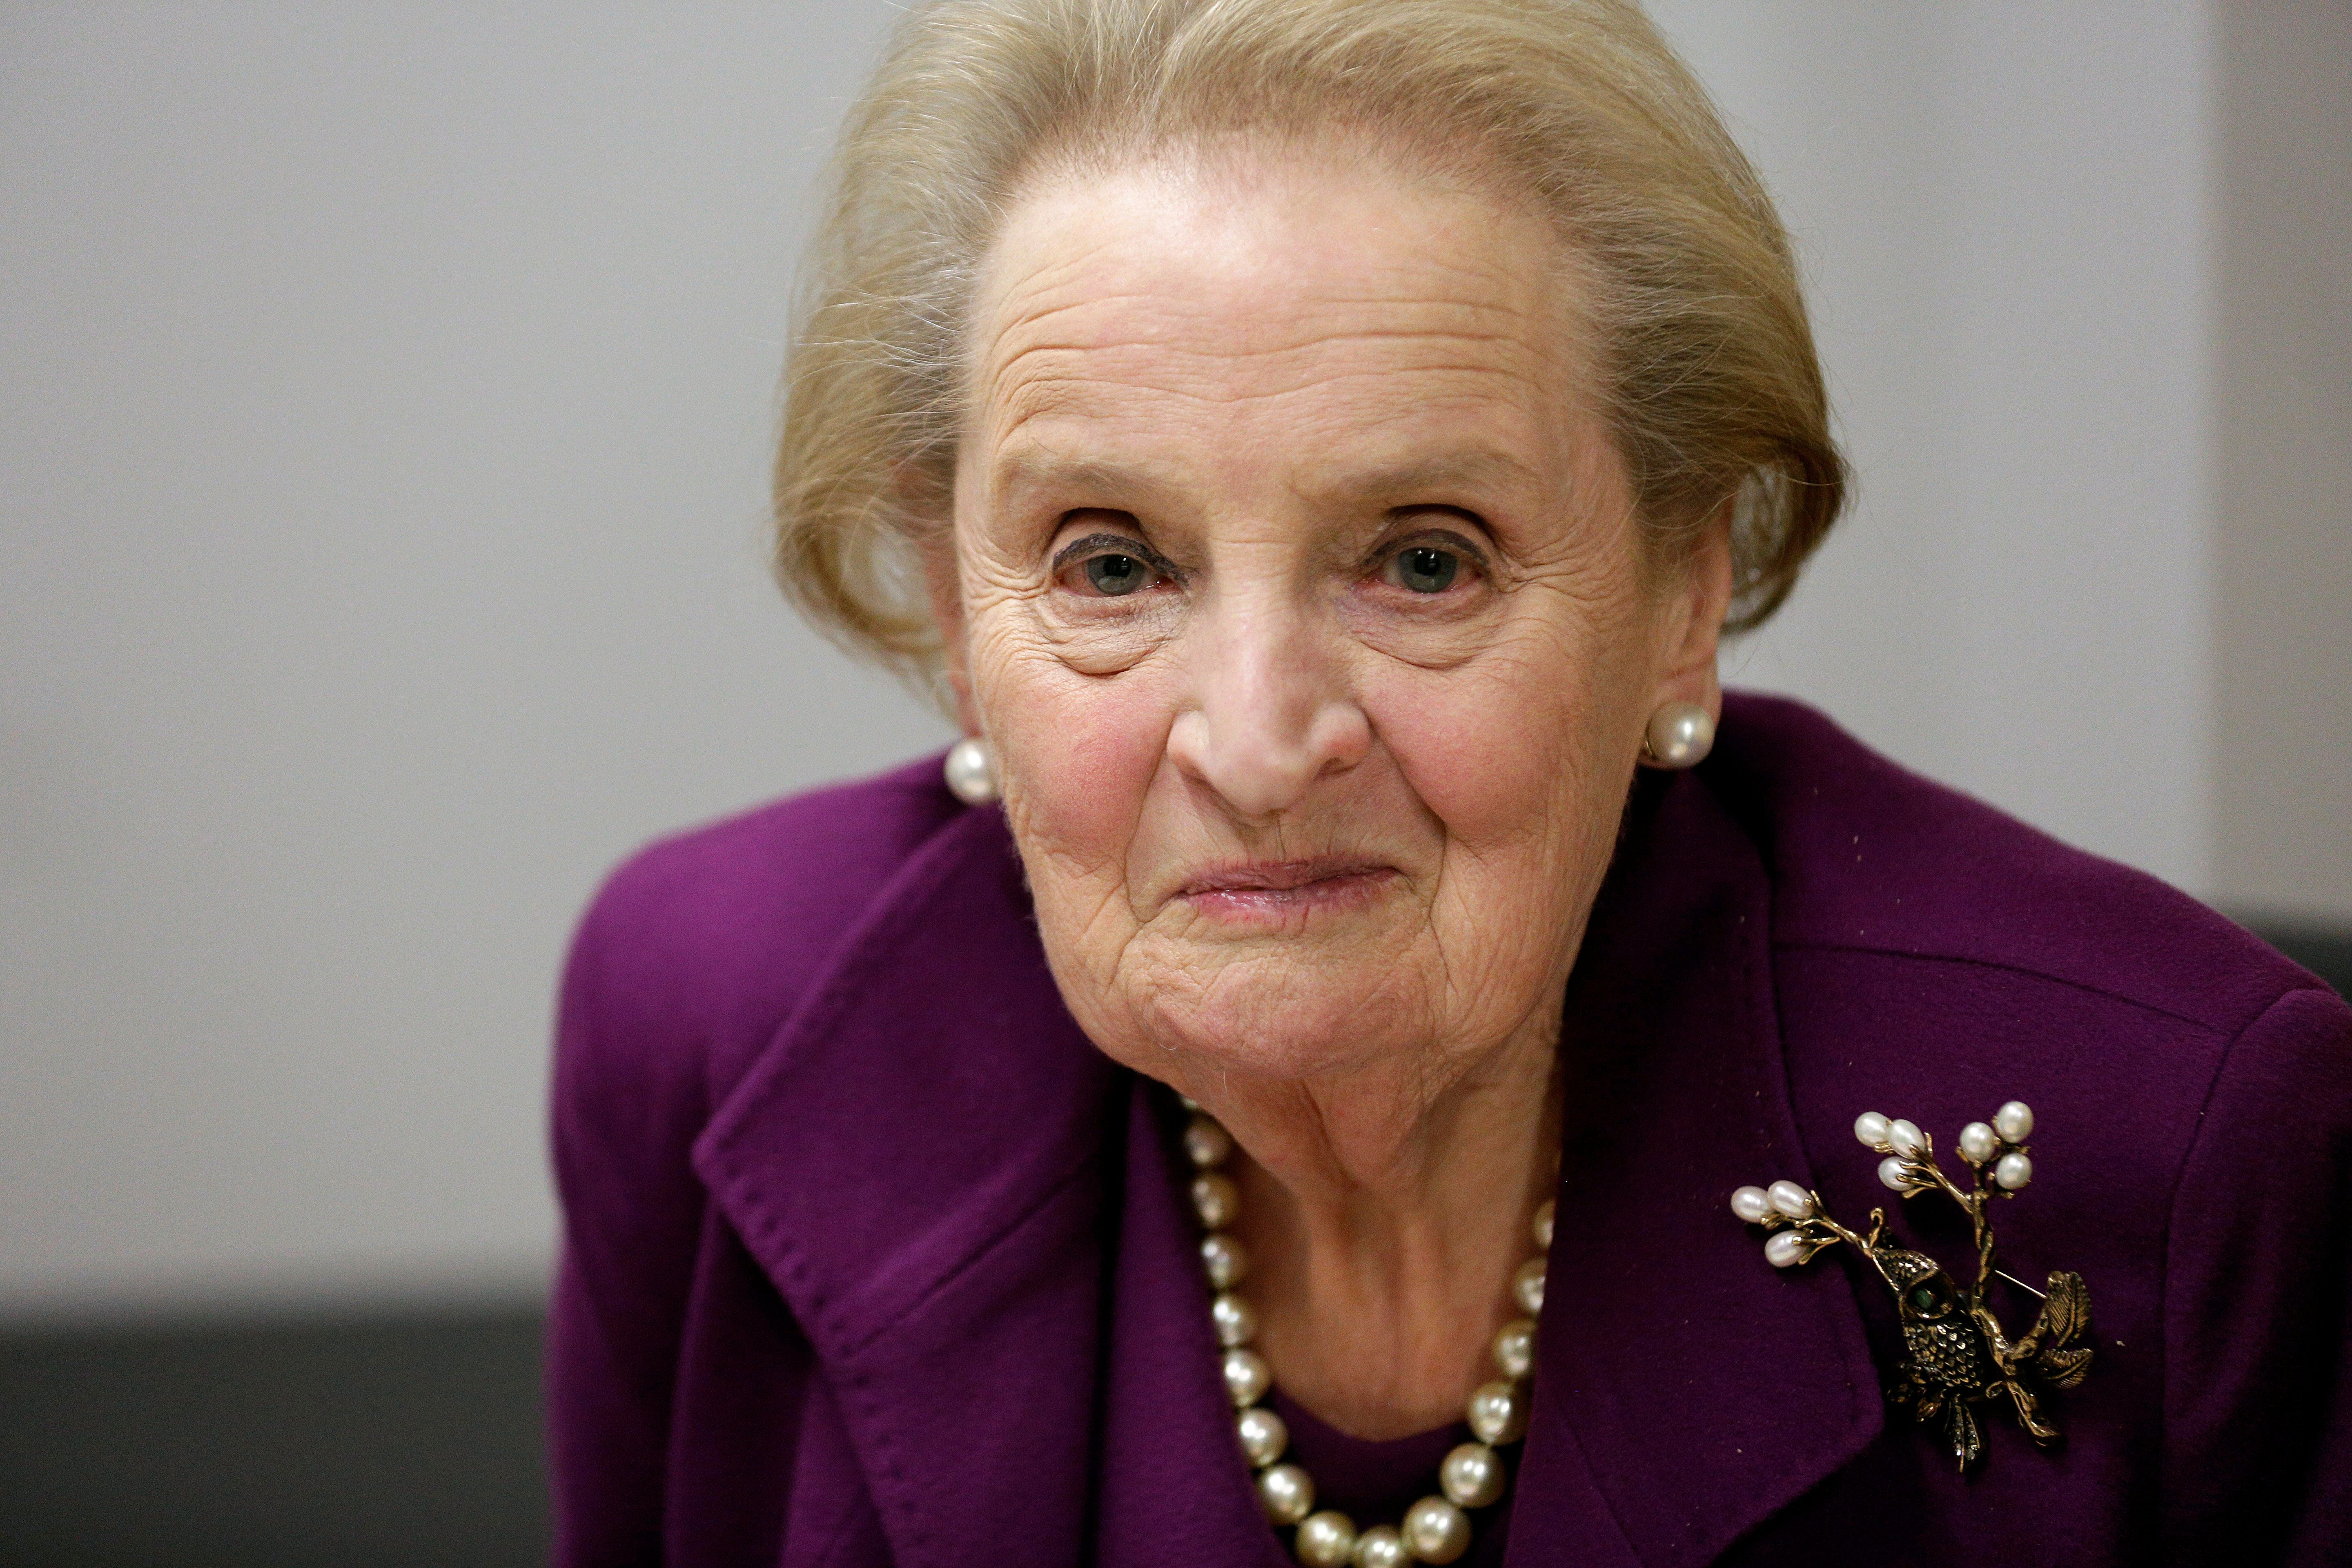 Madeleine Albright Tweets She Is 'Ready To Register As